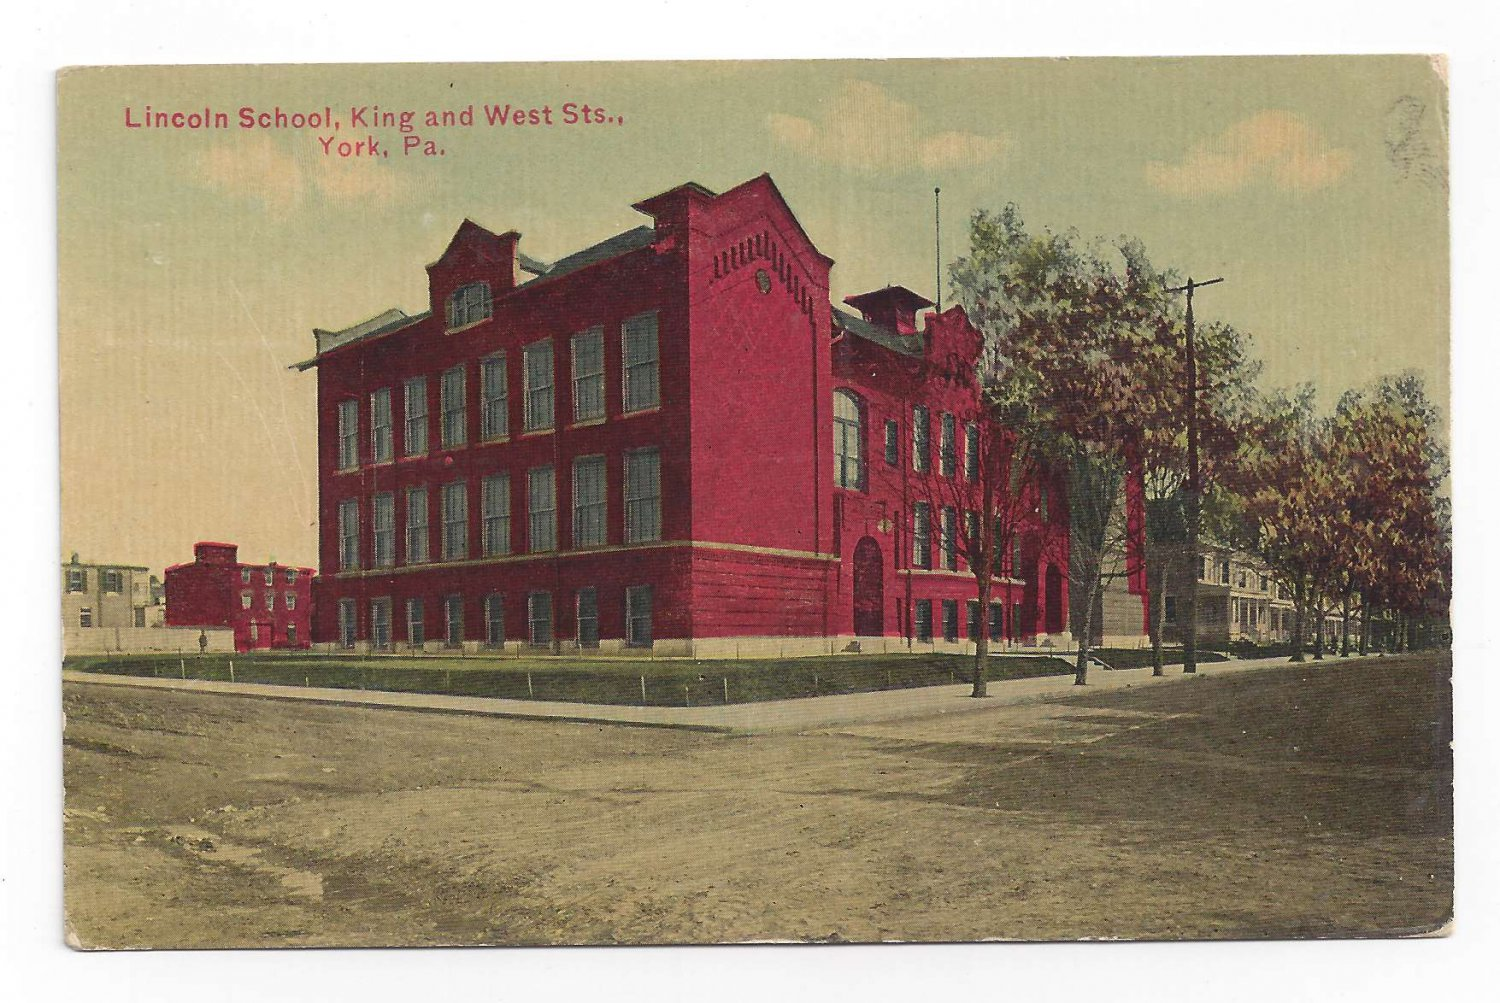 York Pa Lincoln School King And West Streets Vntg Postcard. Hong Kong Transit Hotel Insurance Car Compare. Health Insurance For Small Businesses. Electronic Document Management Companies. Community College Costs Conference North Table. Air Conditioner Replacement Cost. Principles Of Sustainable Design. Nursing Schools In Tucson Az. Sample Monthly Household Budget